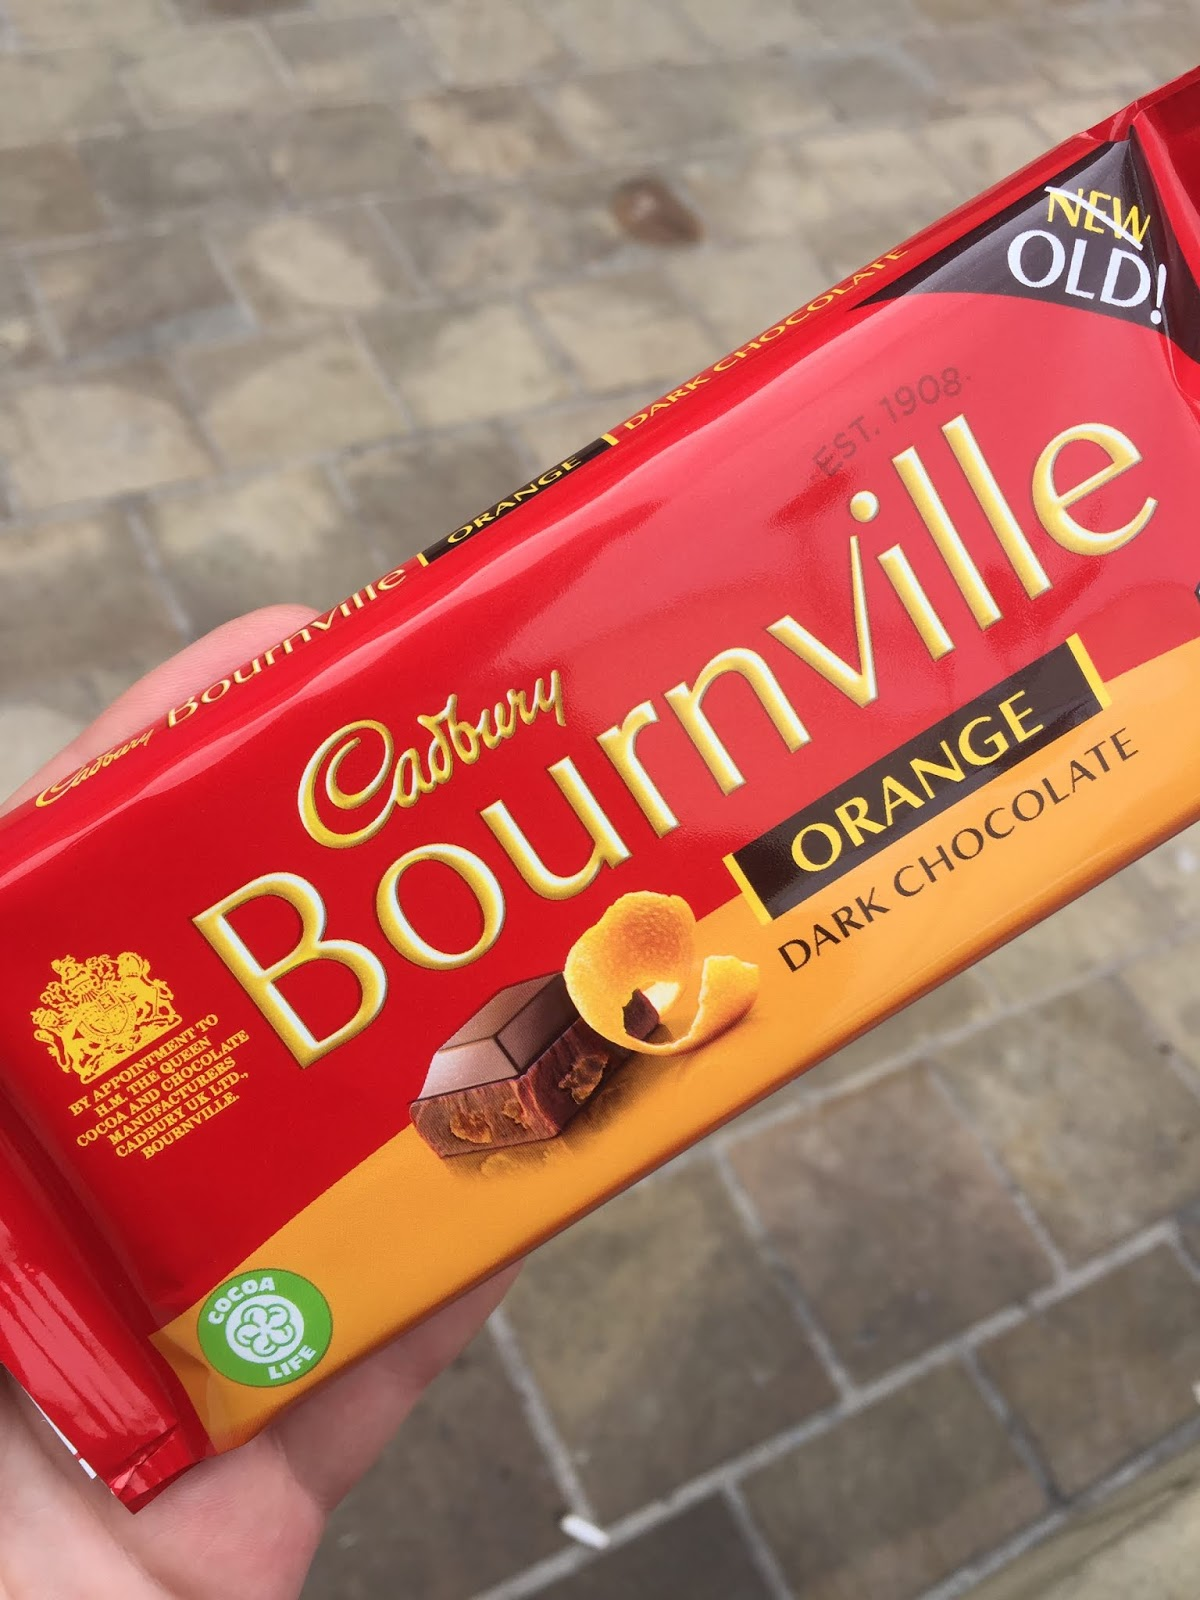 Newold Cadbury Bournville Orange Dark Chocolate